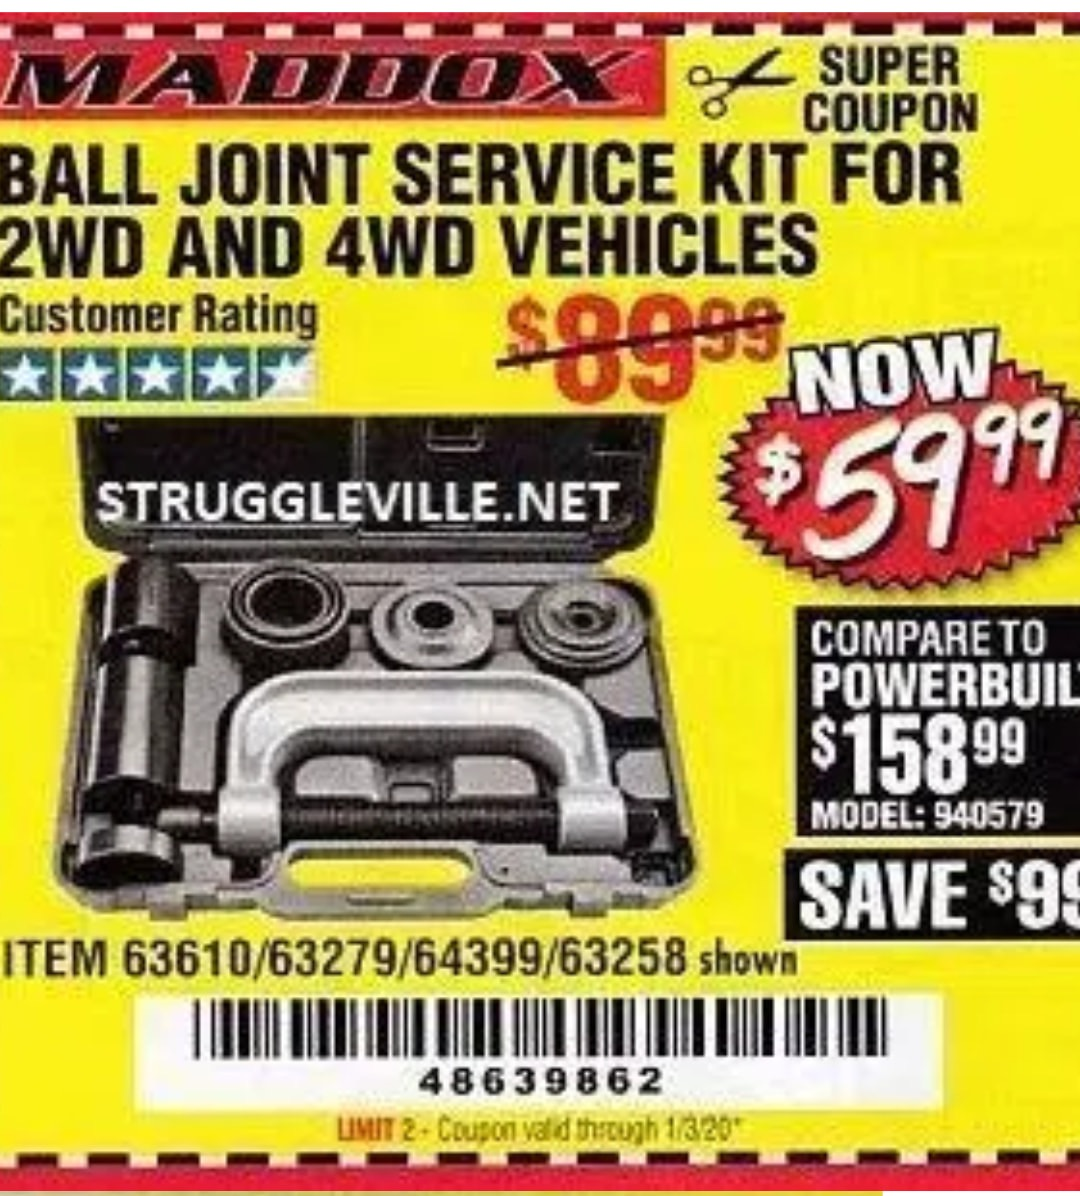 www.hfqpdb.com - BALL JOINT SERVICE KIT FOR 2WD AND 4WD VEHICLES Lot No. 64399/63279/63258/63610